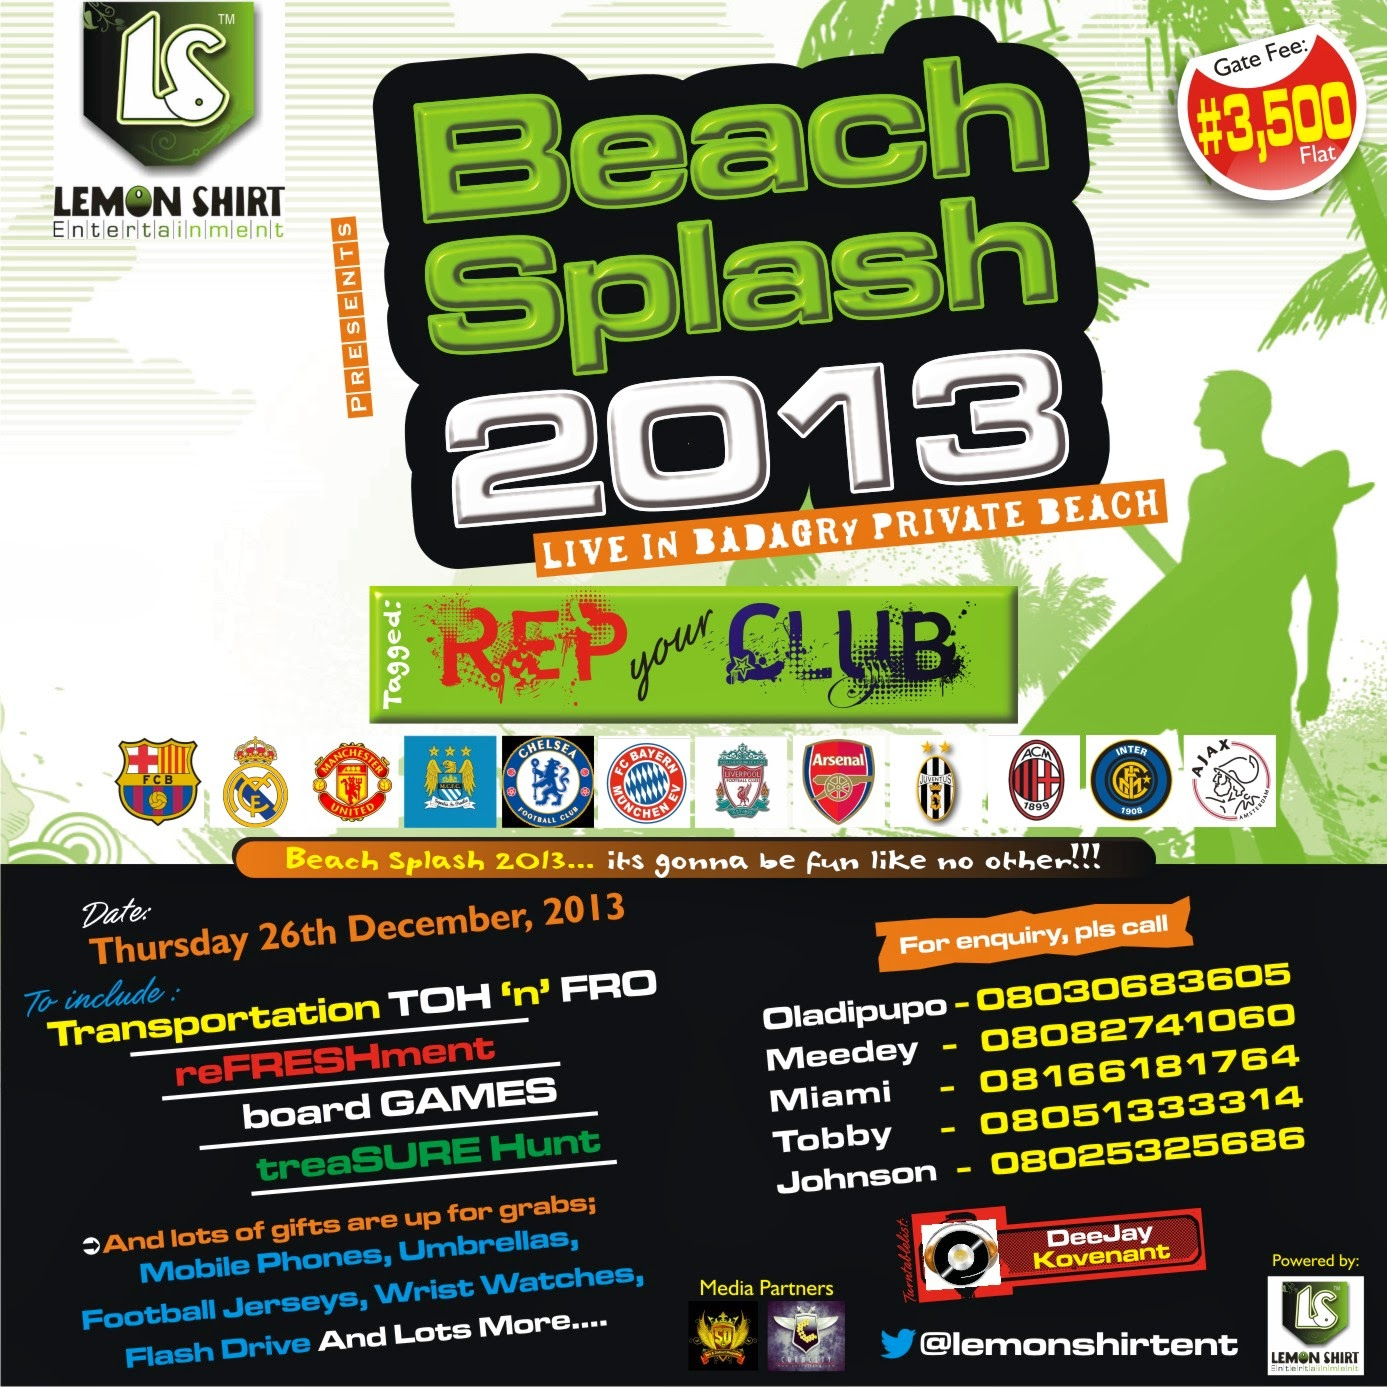 BEACH SPLASH 2013 LIVE IN BADAGRY PRIVATE BEACH